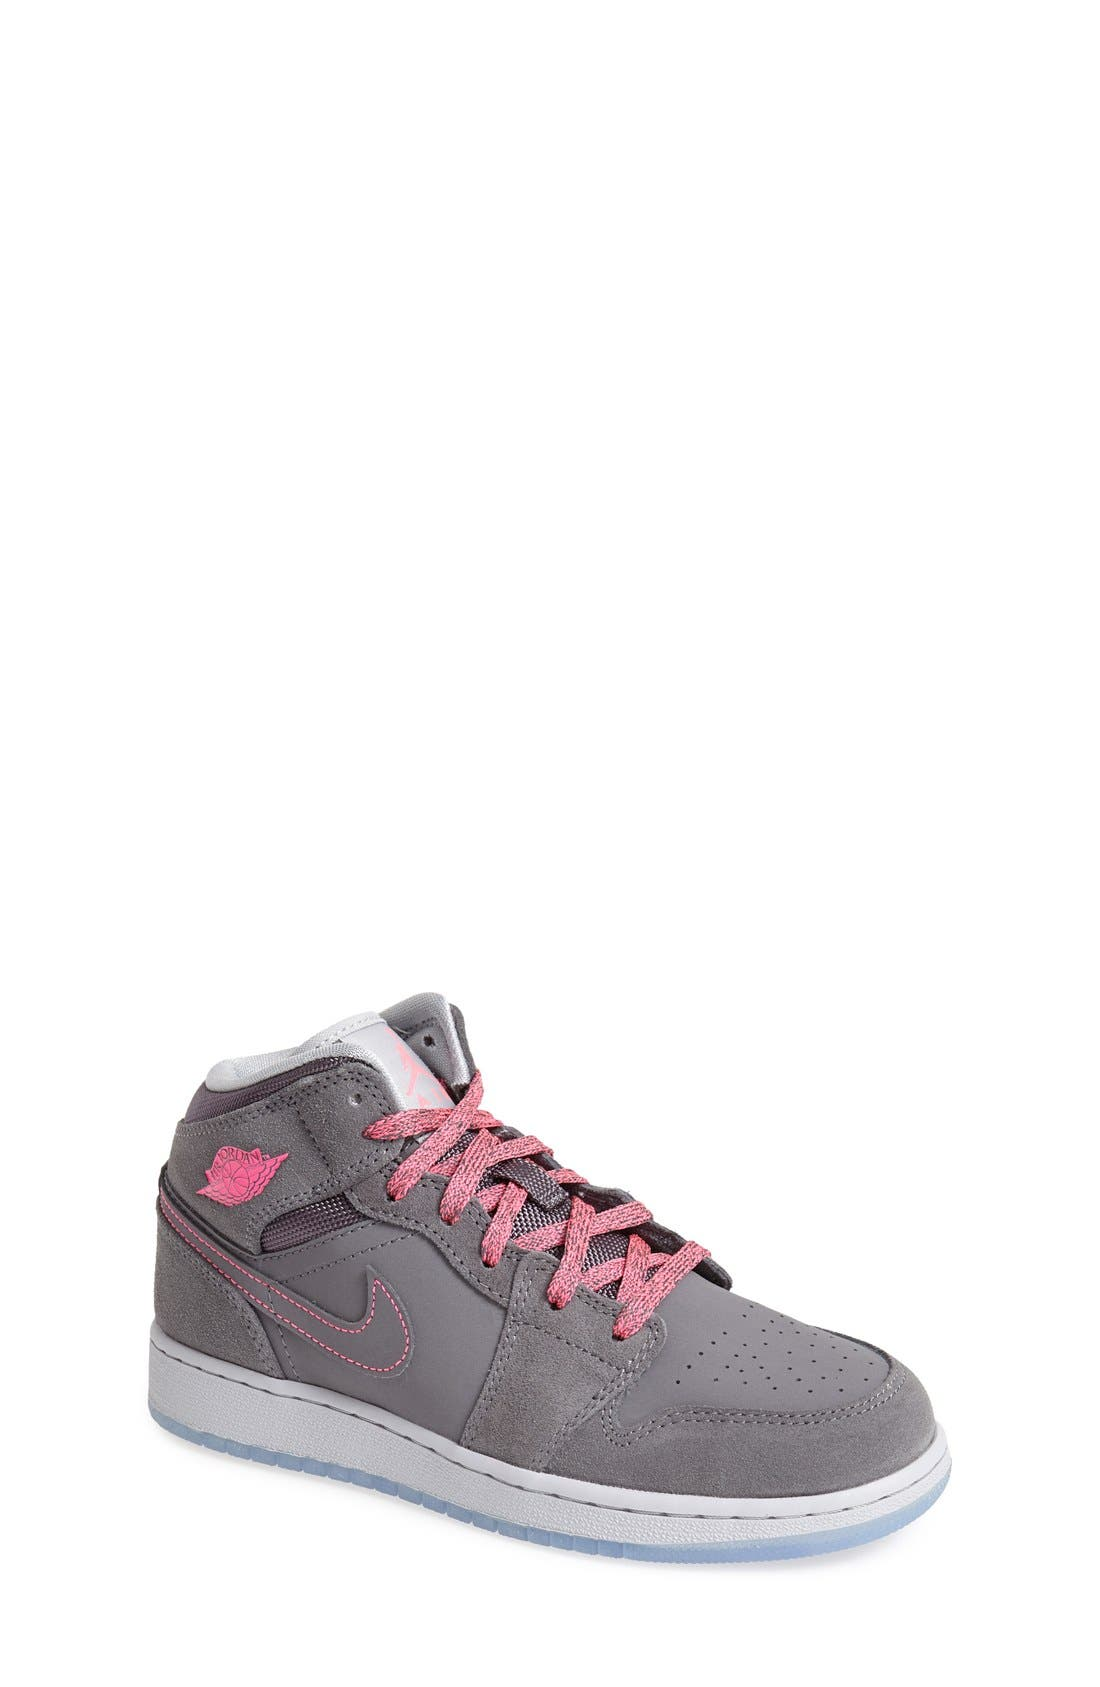 Nike 'Air Jordan 1 Mid' Sneaker,                             Main thumbnail 3, color,